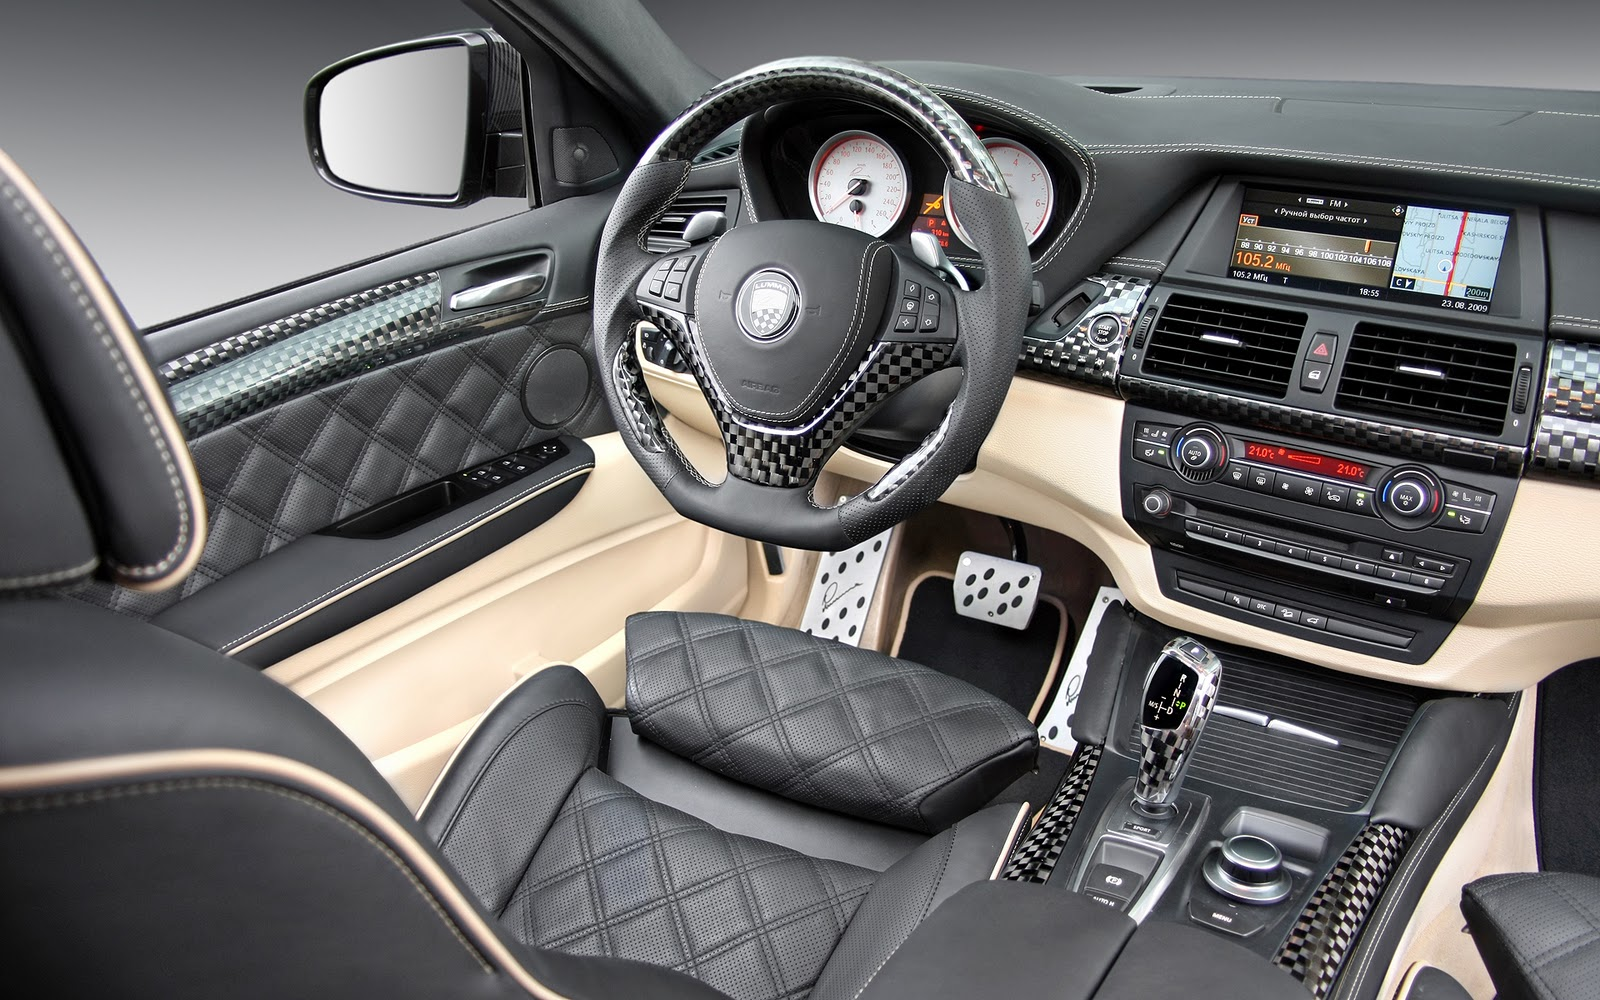 Cool car wallpapers bmw x6 2011 interior for Interieur x6